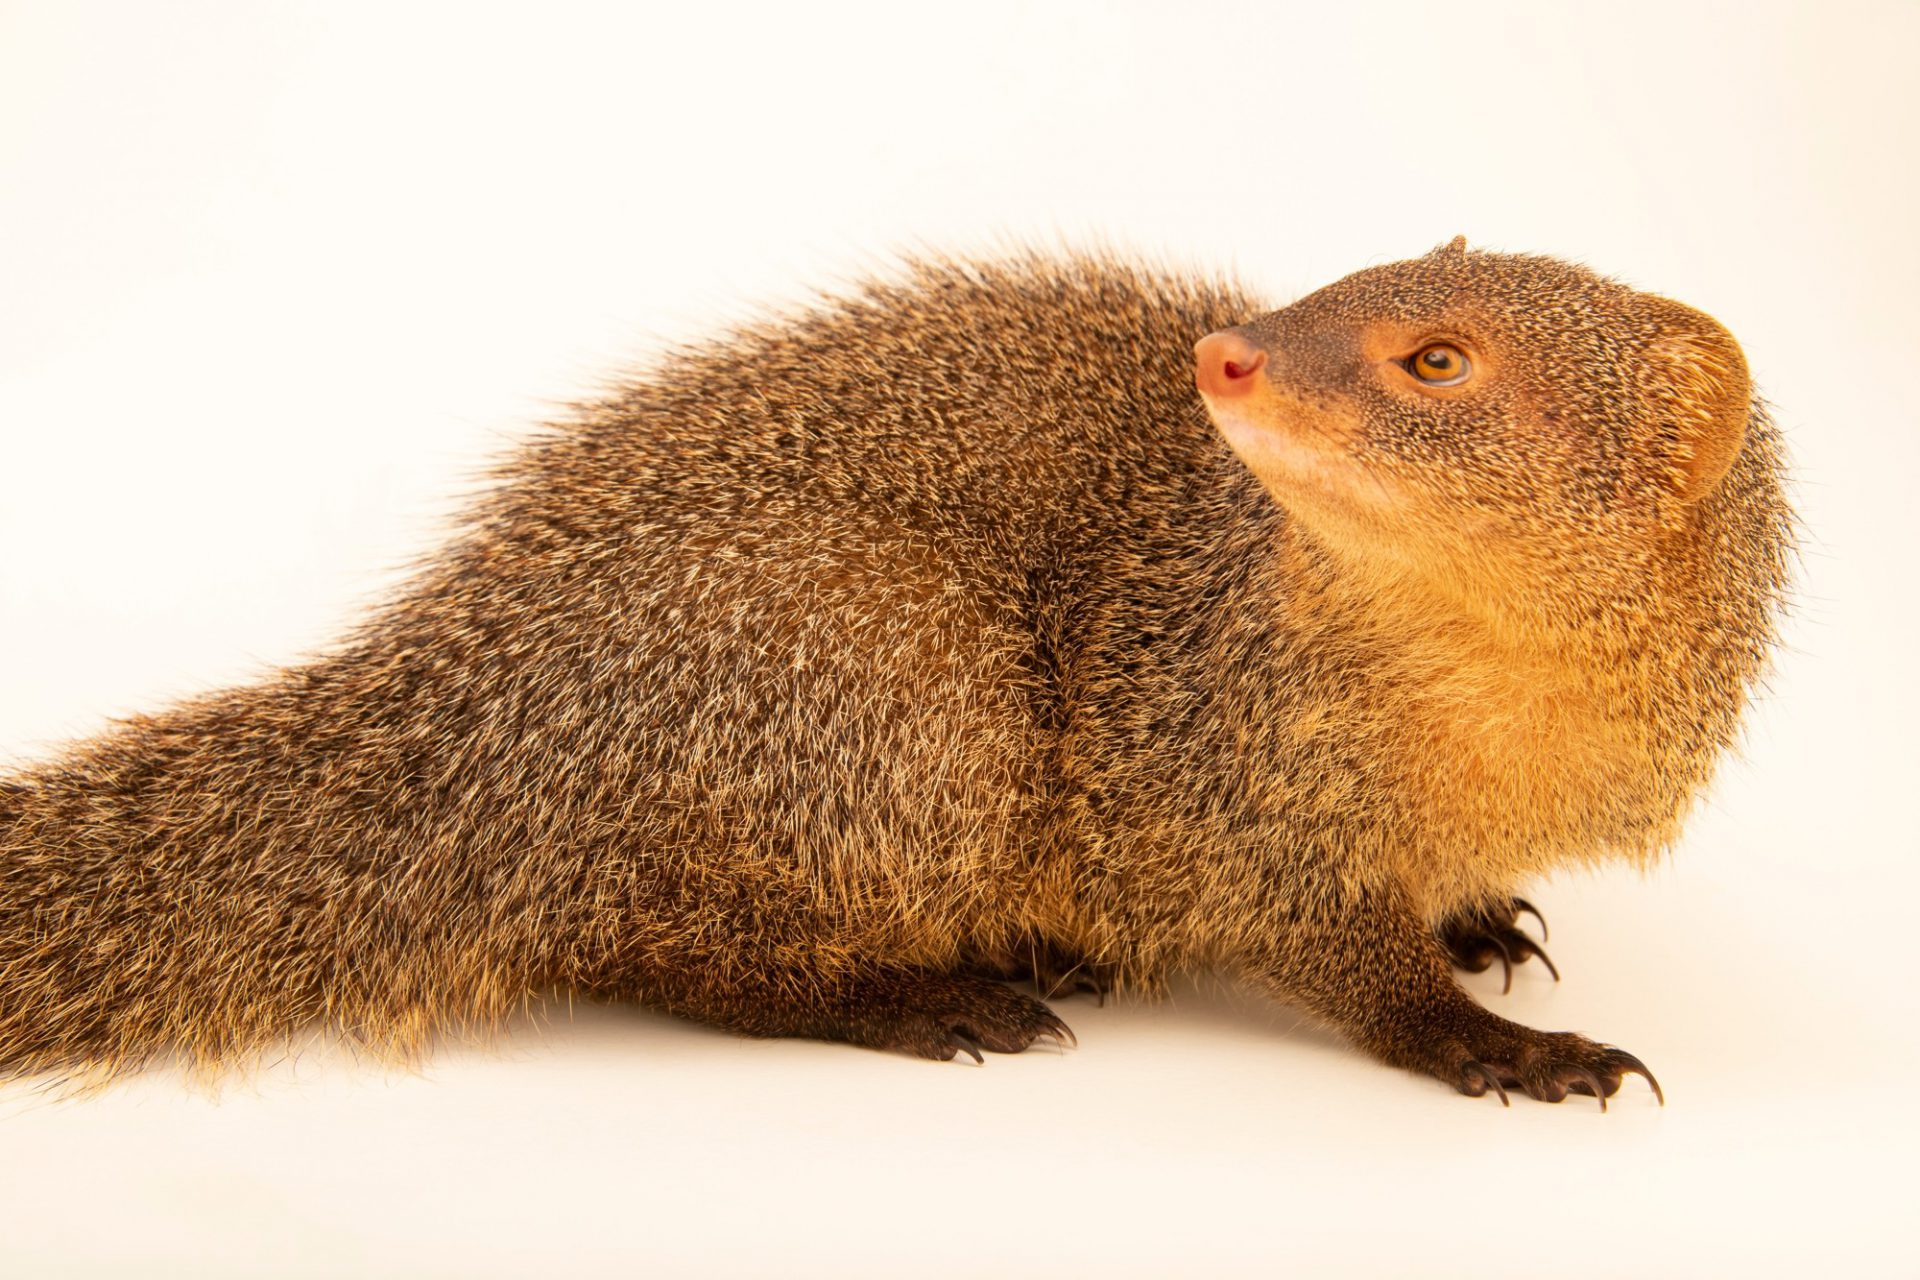 Photo: A Javan mongoose (Herpestes javanicus) from Sumatra, at Taman Safari.